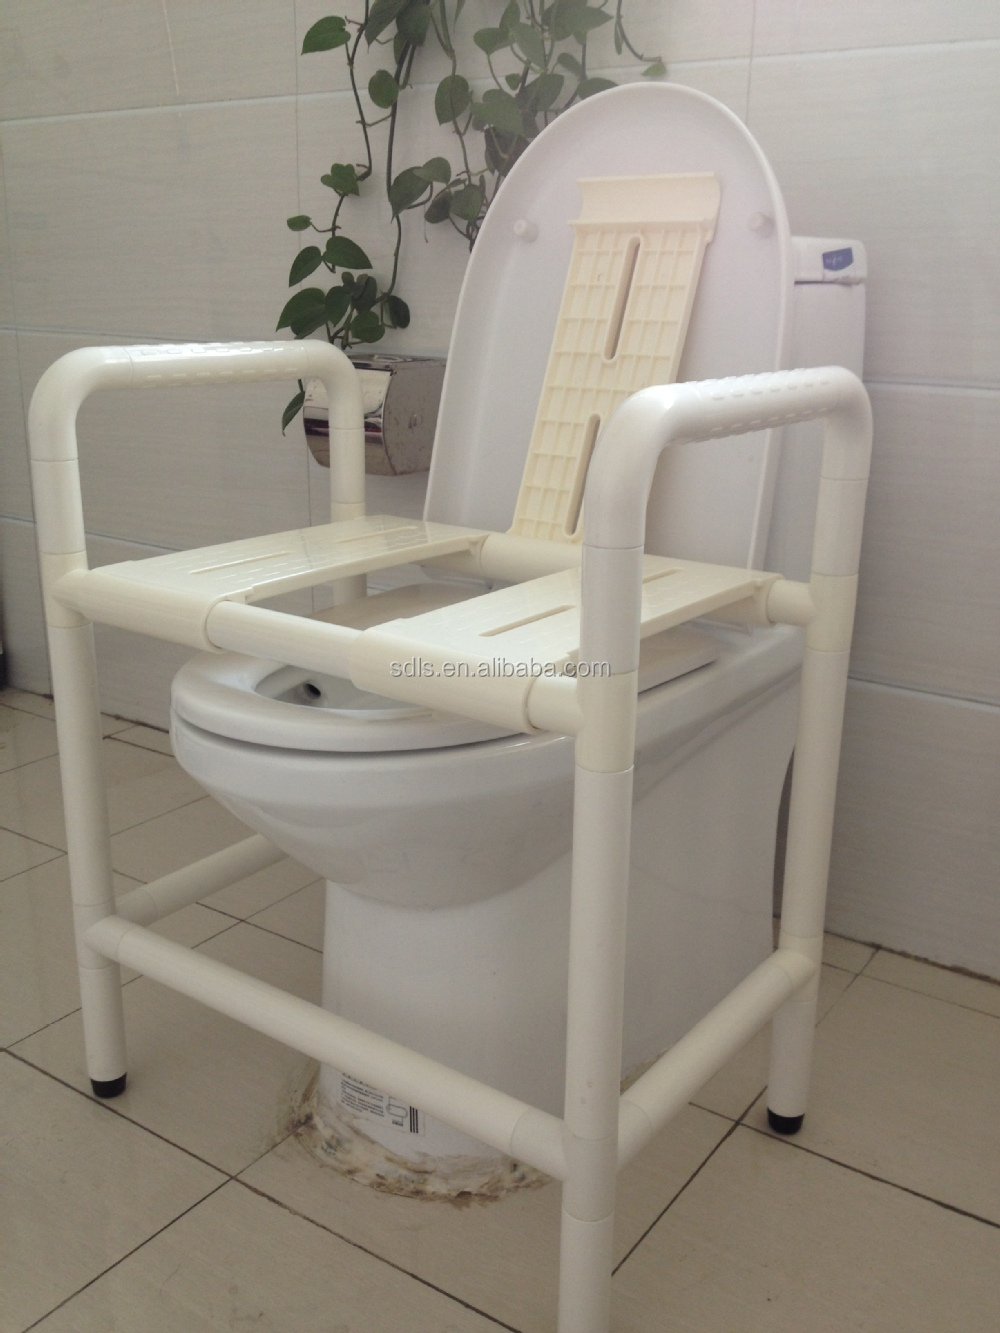 handicap shower chairs knoll tulip chair bath for disabled - buy disabled,chair people ...